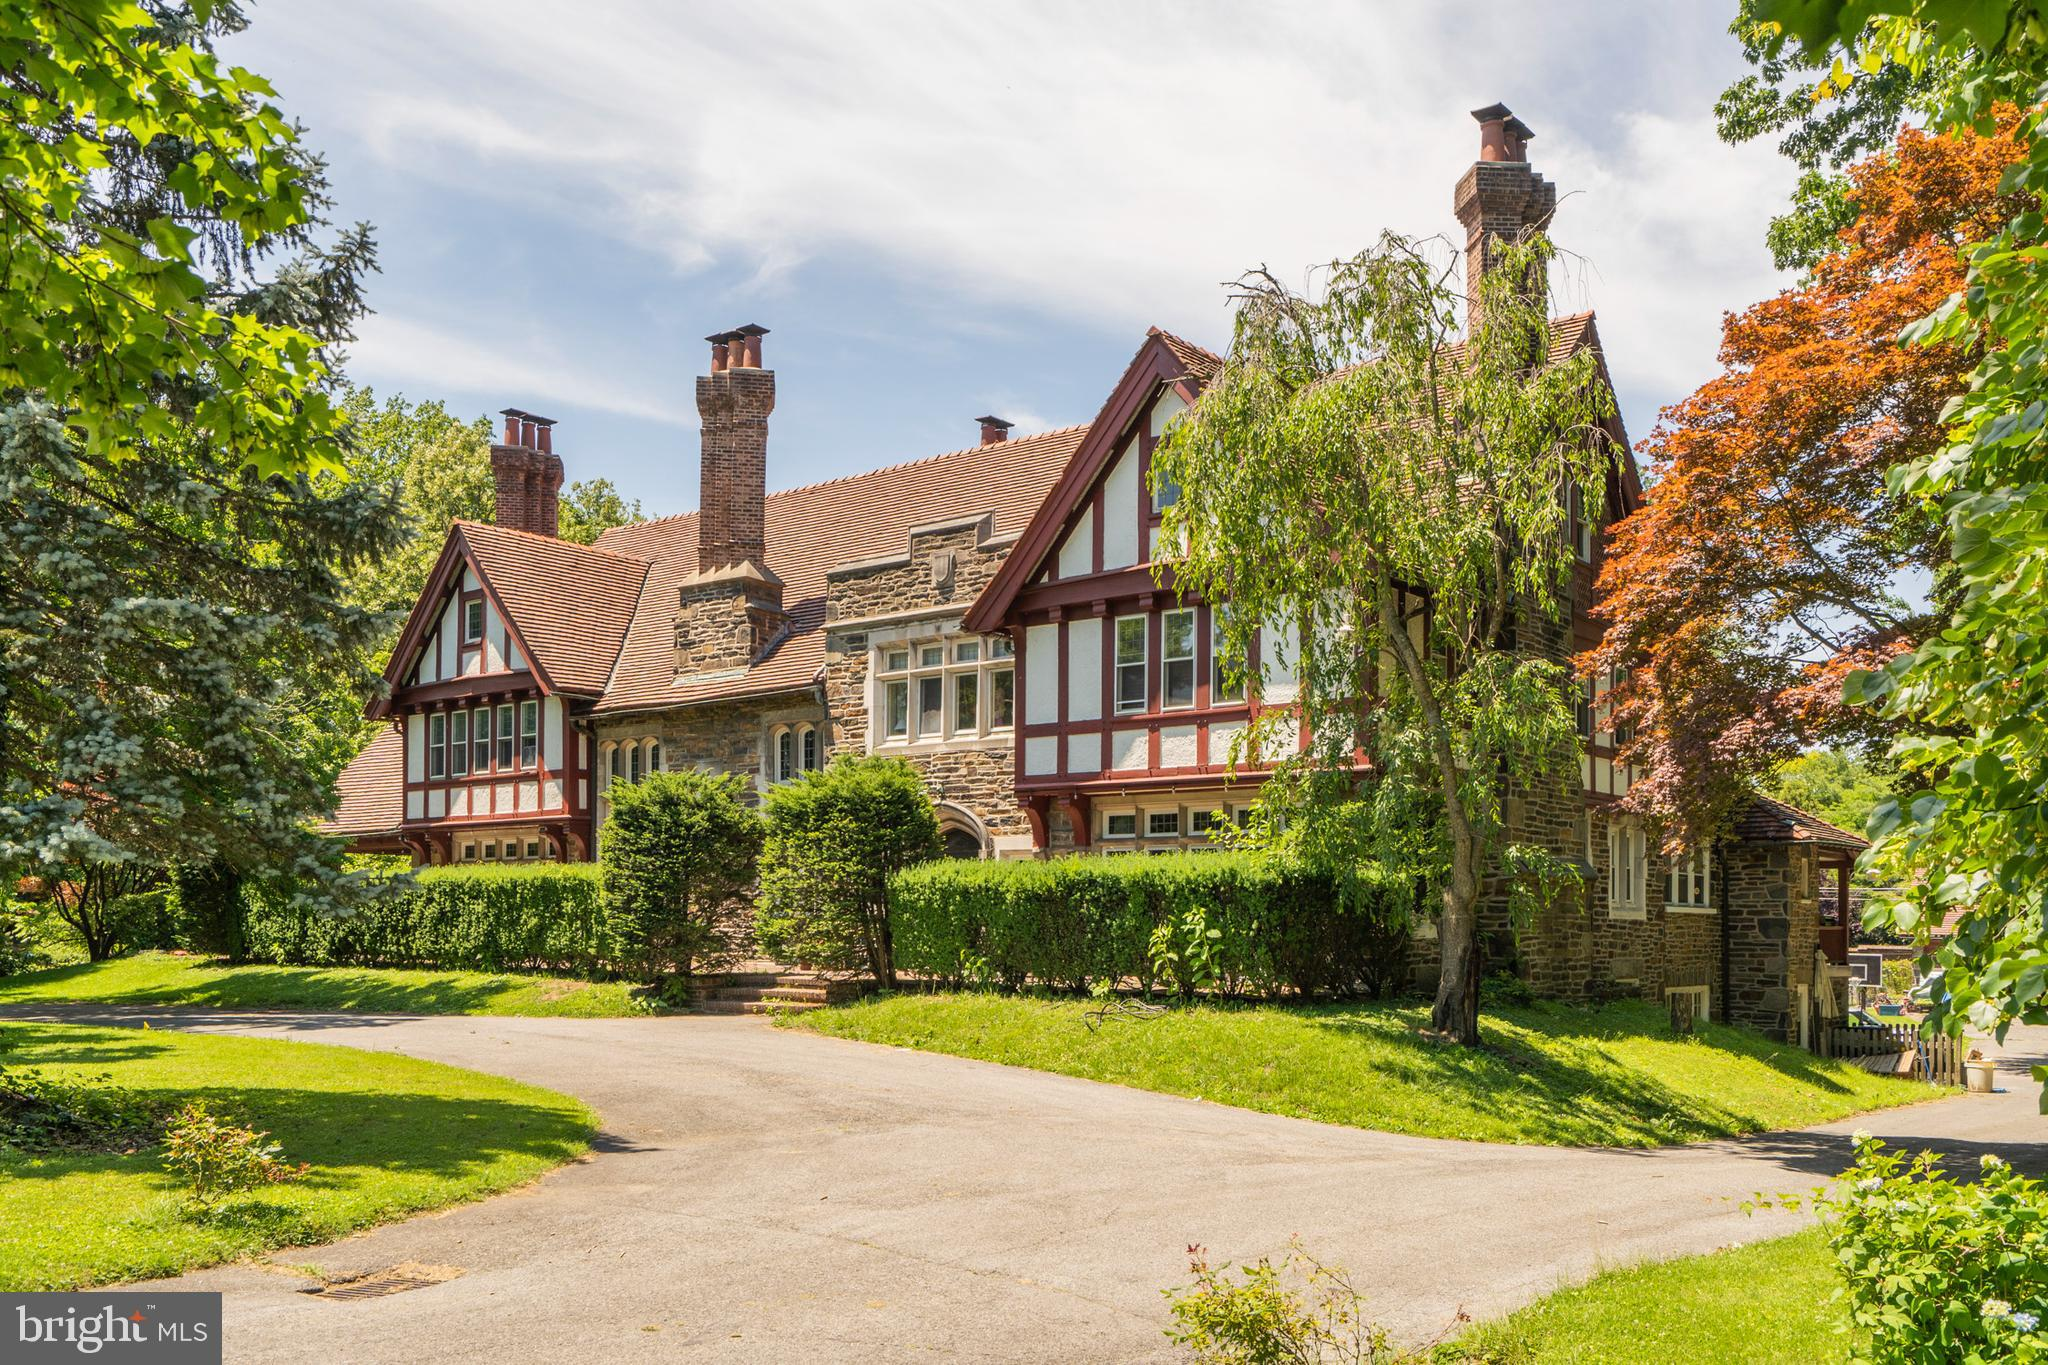 Incredible opportunity to own a piece of Main Line History. This grand Tudor estate built by Albert Barnes offers magnificent architectural detail, gorgeous stone masonry and unsurpassed moulding, woodwork and carvings. This exceptional property offers over 9000' sq. ft. of living space, 8 fireplaces, 13 chimneys, 8+bedrooms, leaded glass windows, a separate carriage home with living quarters and a gorgeous 1.7 acre deep, private lot. The first floor of this home offers enormous rooms including a breathtaking grand hall entry with original red oak flooring, paneling and ceiling beams.  Large formal Living Room and Library feature stunning fireplaces and woodwork. Extensive eat-in kitchen with 2 gas ranges, wood cabinetry and quartz countertops. Completing the first floor is a large office with wonderful views of the sprawling backyard. The 2nd and 3rd floors of this home do not disappoint with 12 rooms several with en suite bathrooms and uses as bedrooms, studios, exercise rooms and offices. The enchanting grounds are private, quiet and picturesque filled with mature plantings and lovely gardens. Truly a remarkable property carefully designed with world class materials and workmanship.